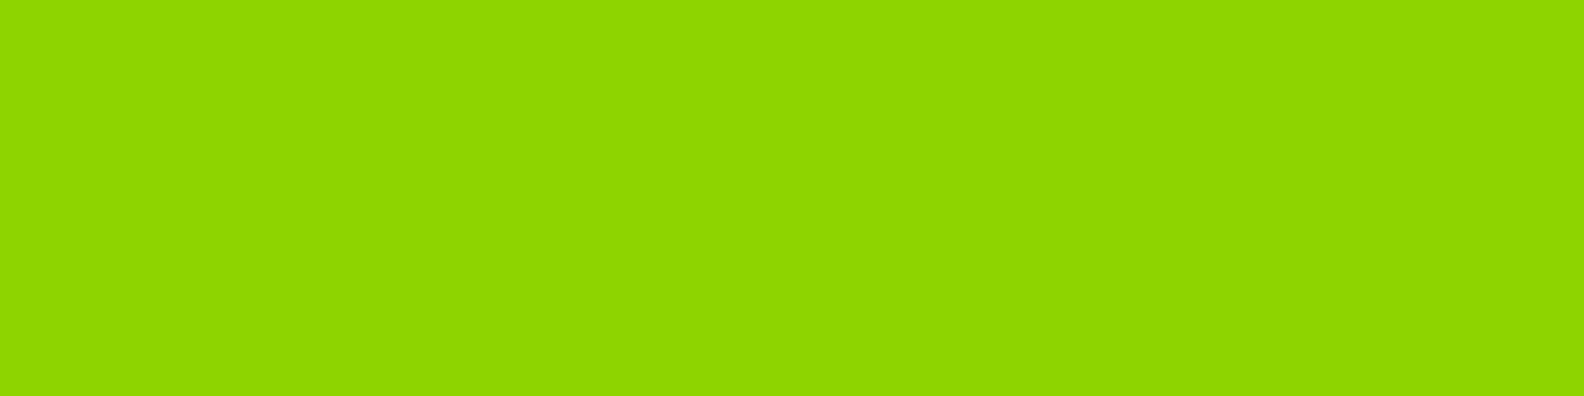 1584x396 Sheen Green Solid Color Background